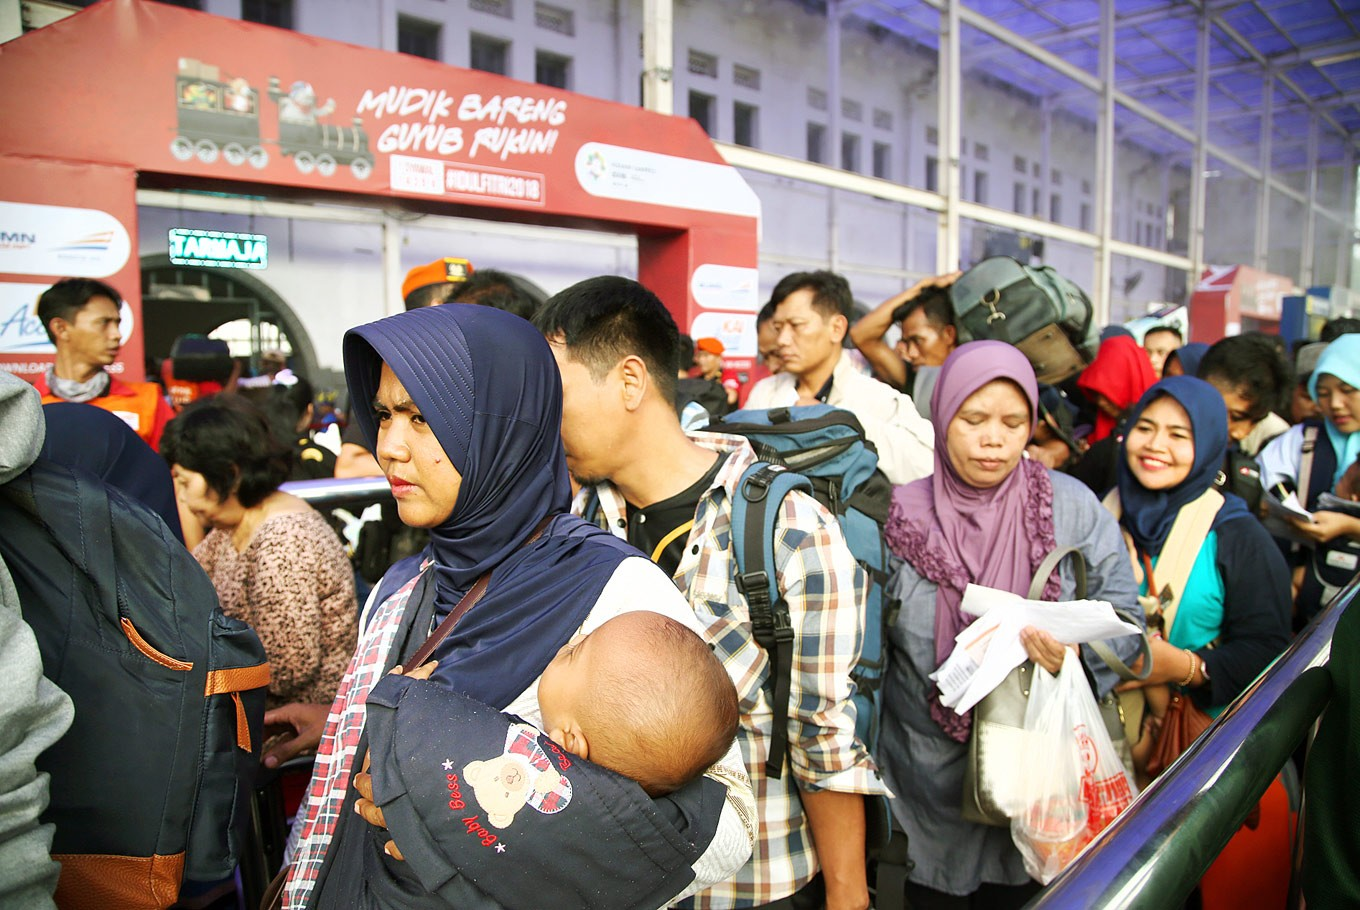 Train stations provide co-working spaces, more facilities for Idul Fitri travelers